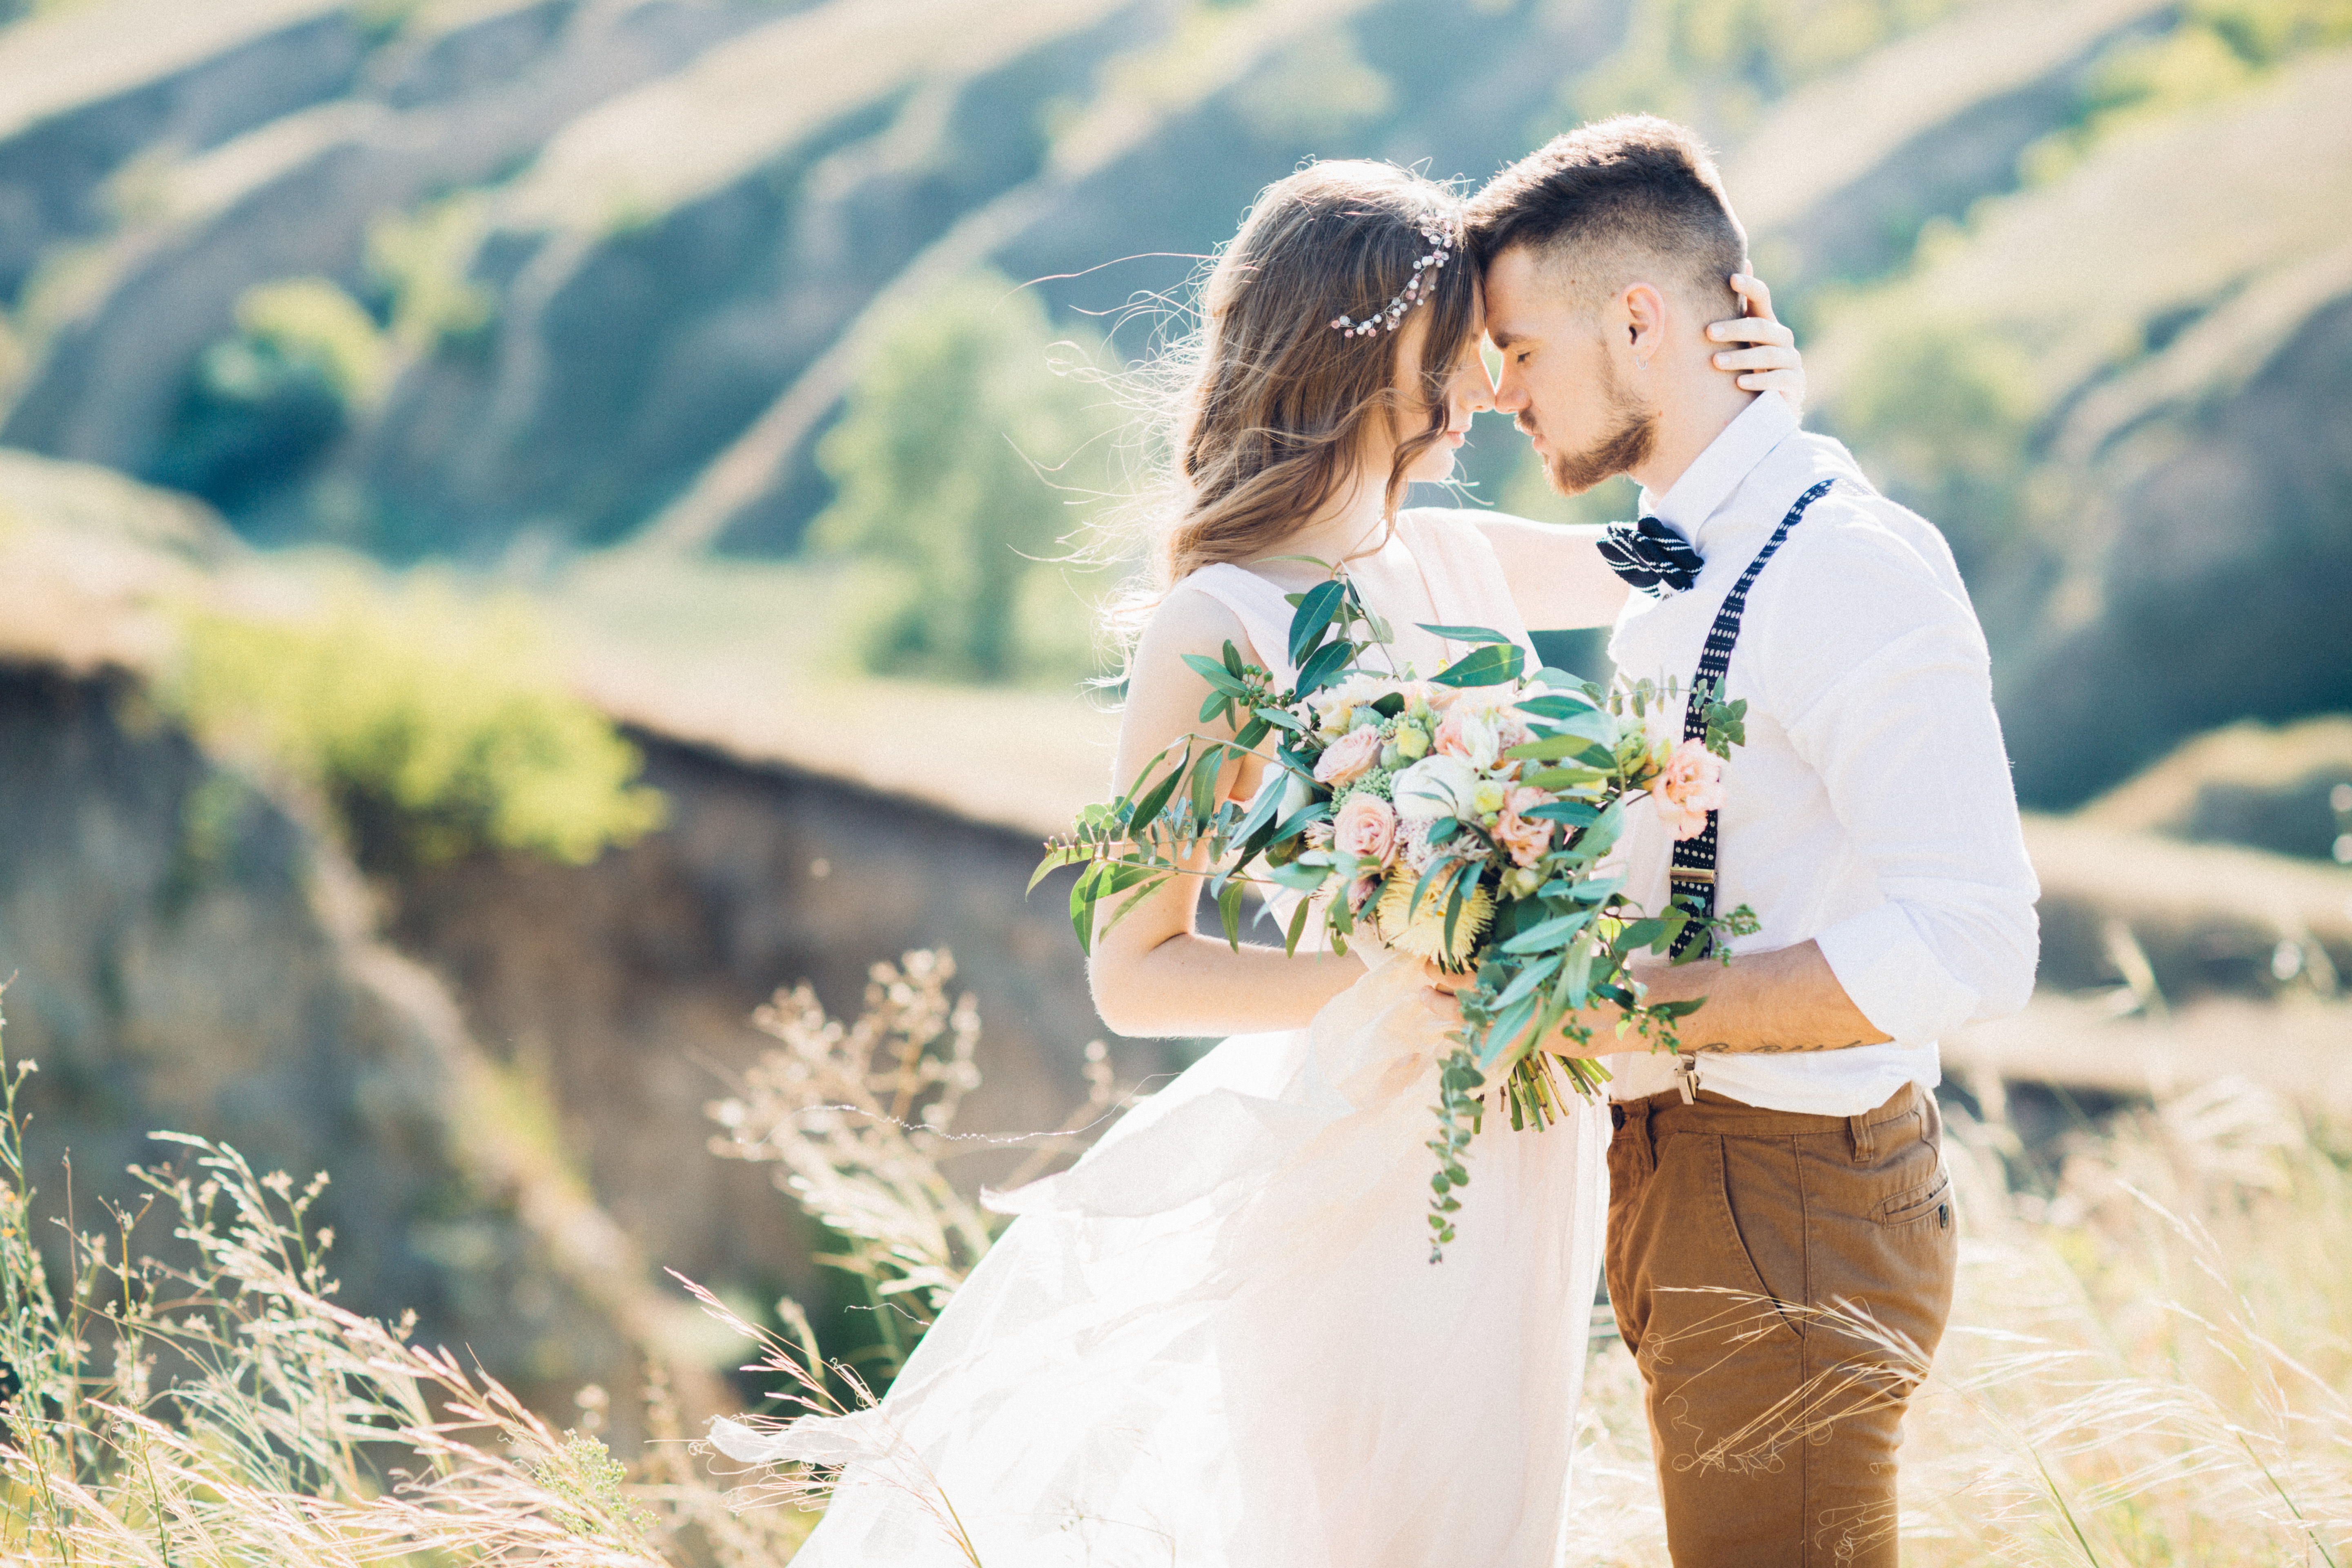 Wedding agencies of Zhytomyr: a selection of sites